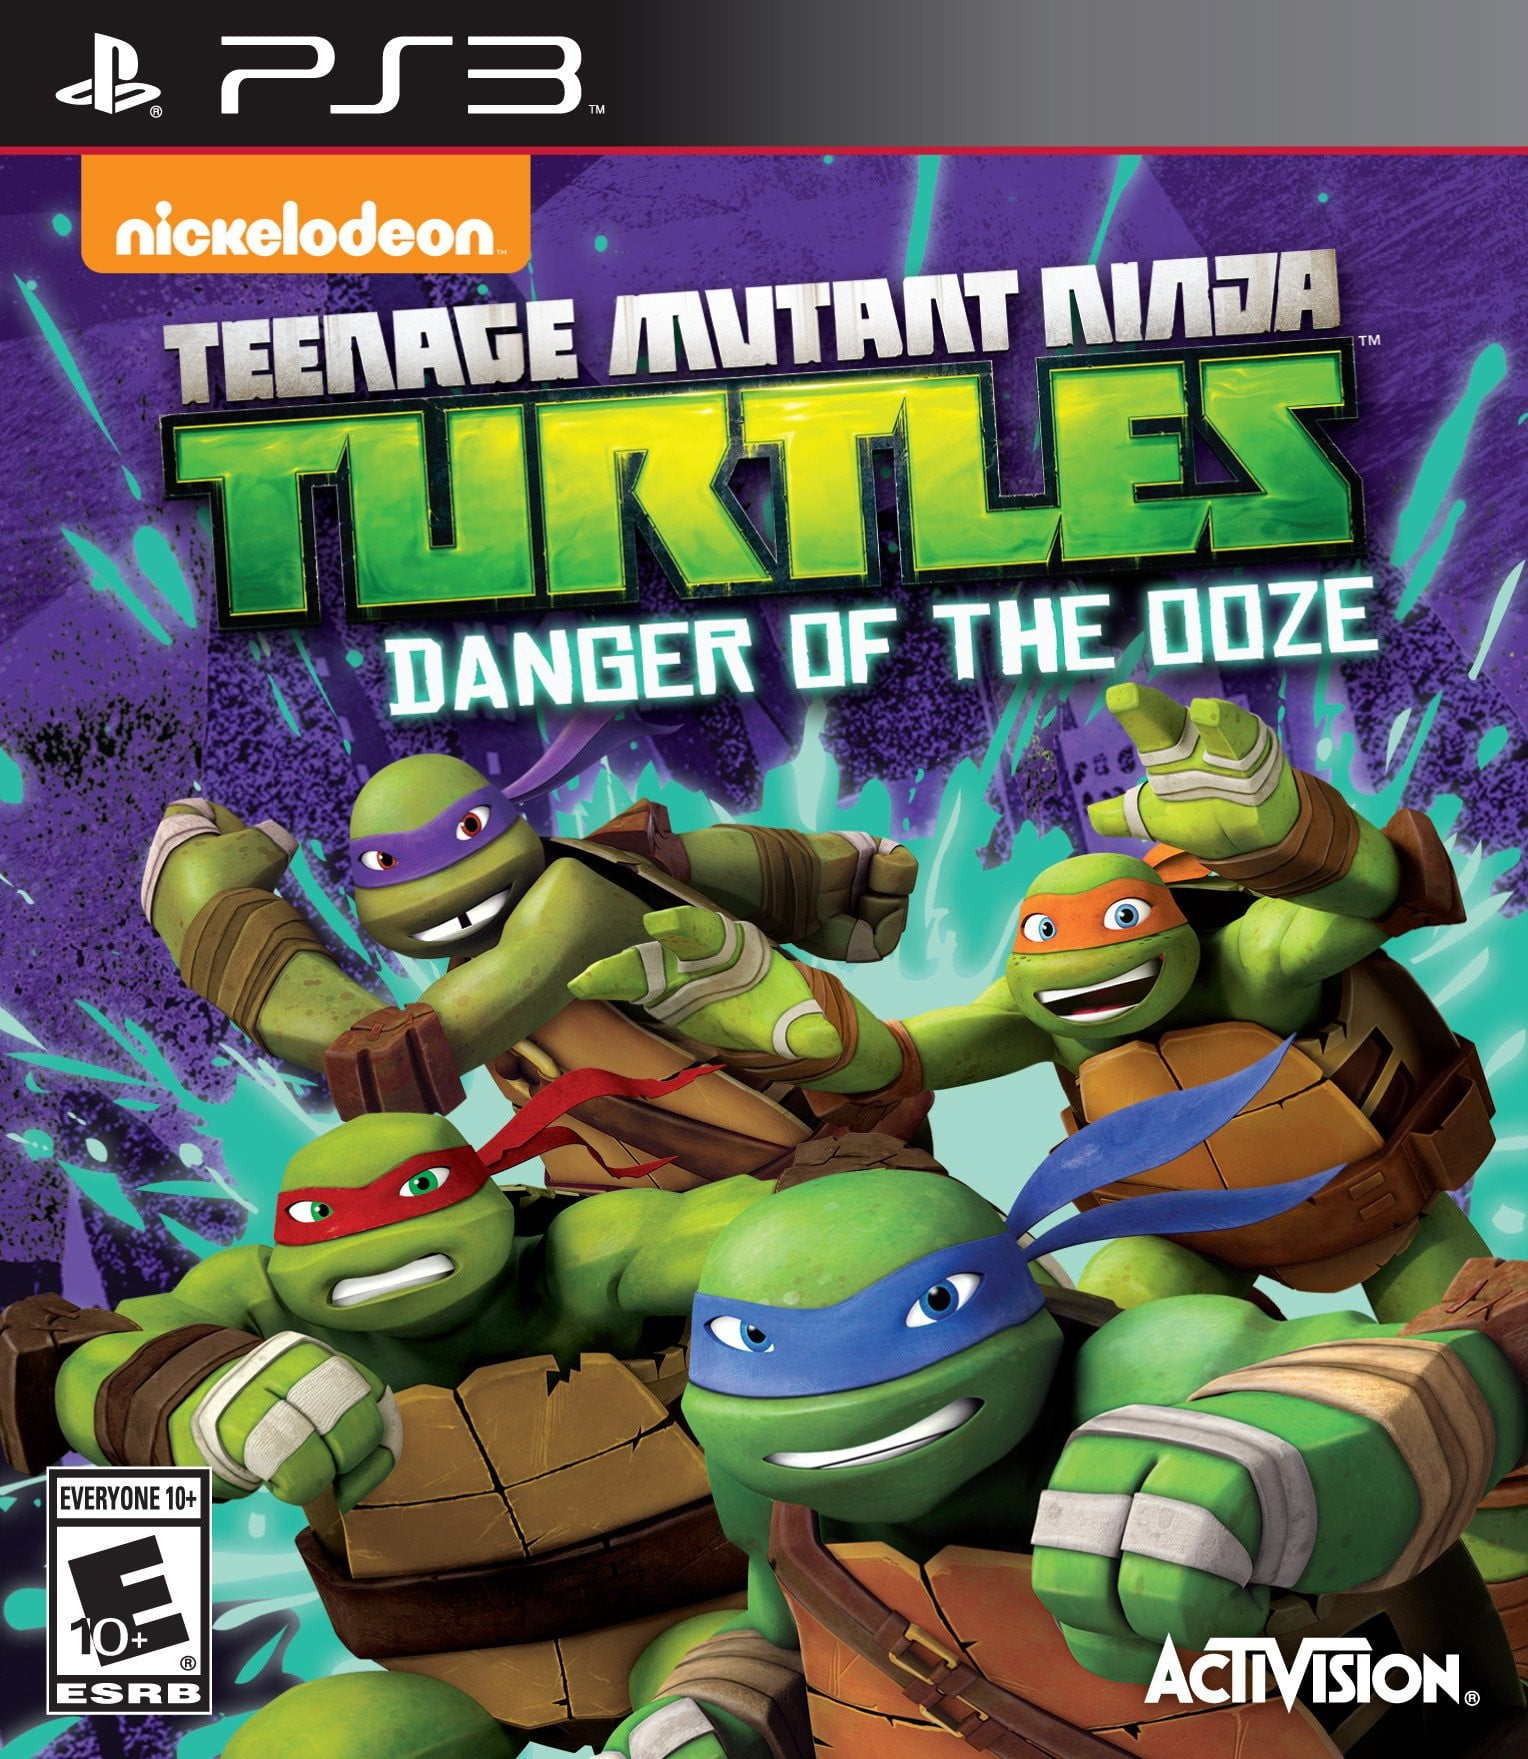 Buy Teenage Mutant Ninja Turtles: Danger of ooze (PS3) PS3 Game in Egypt - Shamy Stores